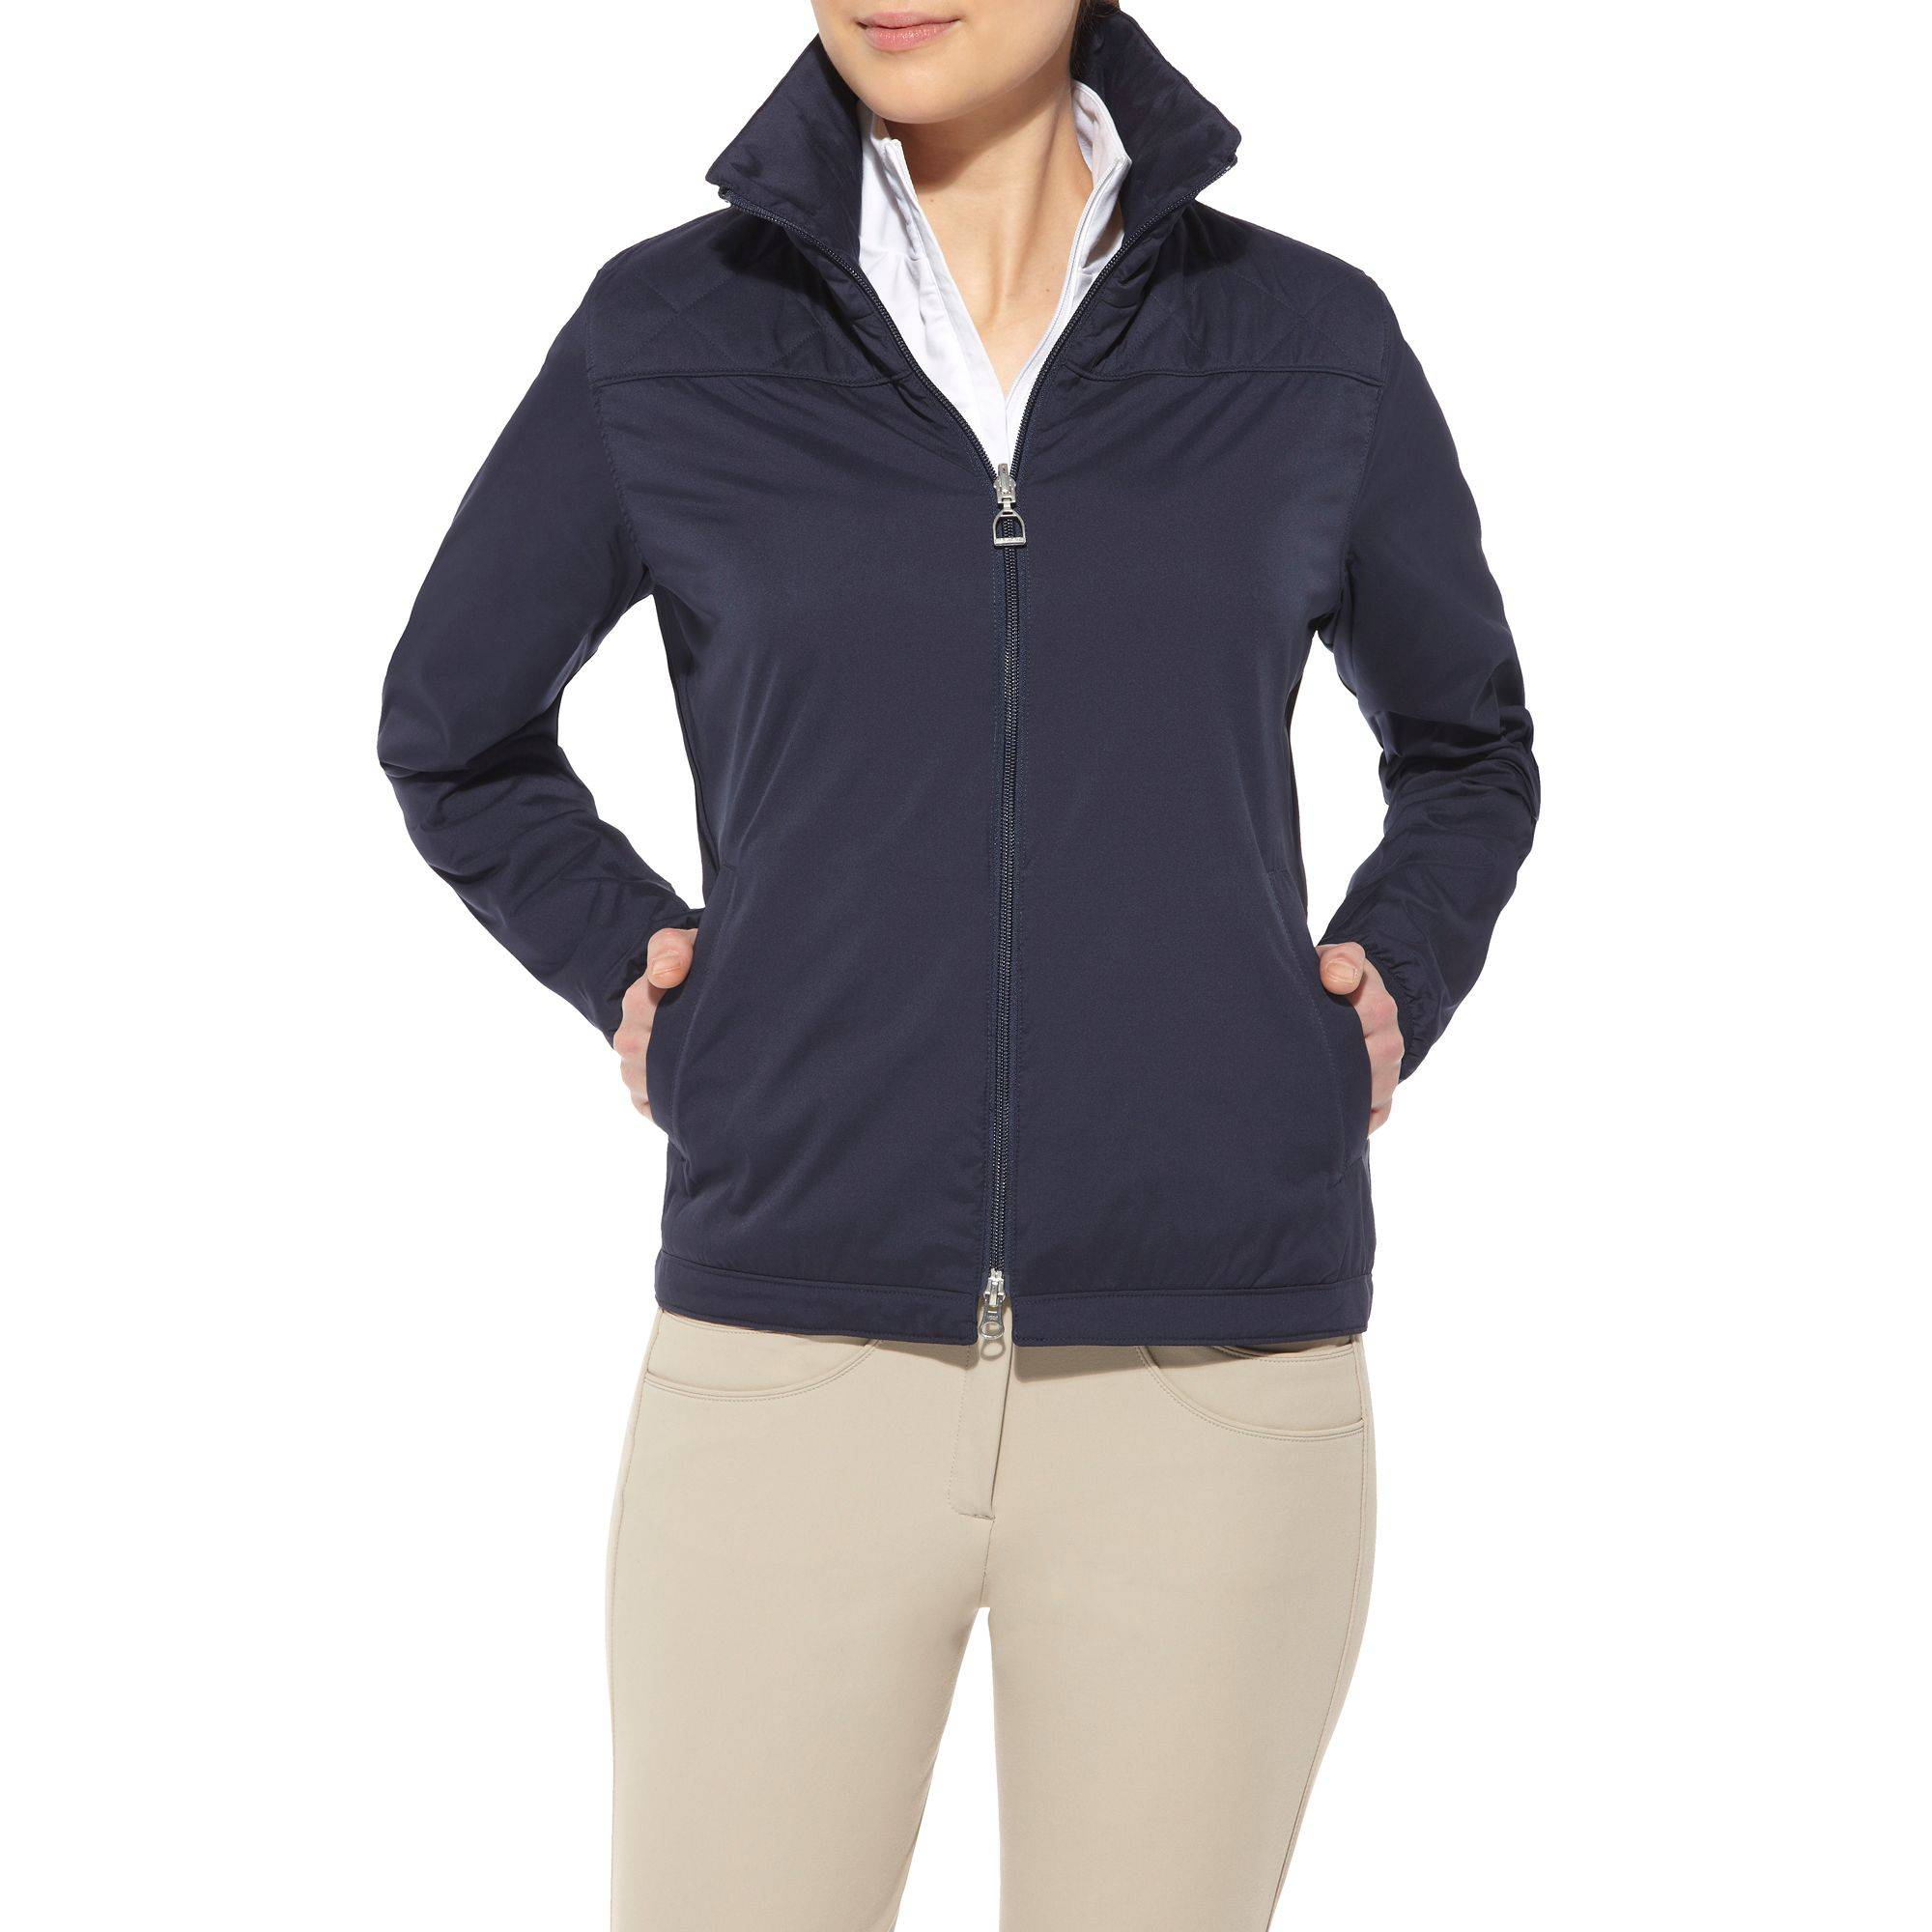 Ariat Cyprus Fleece Jacket - Ladies